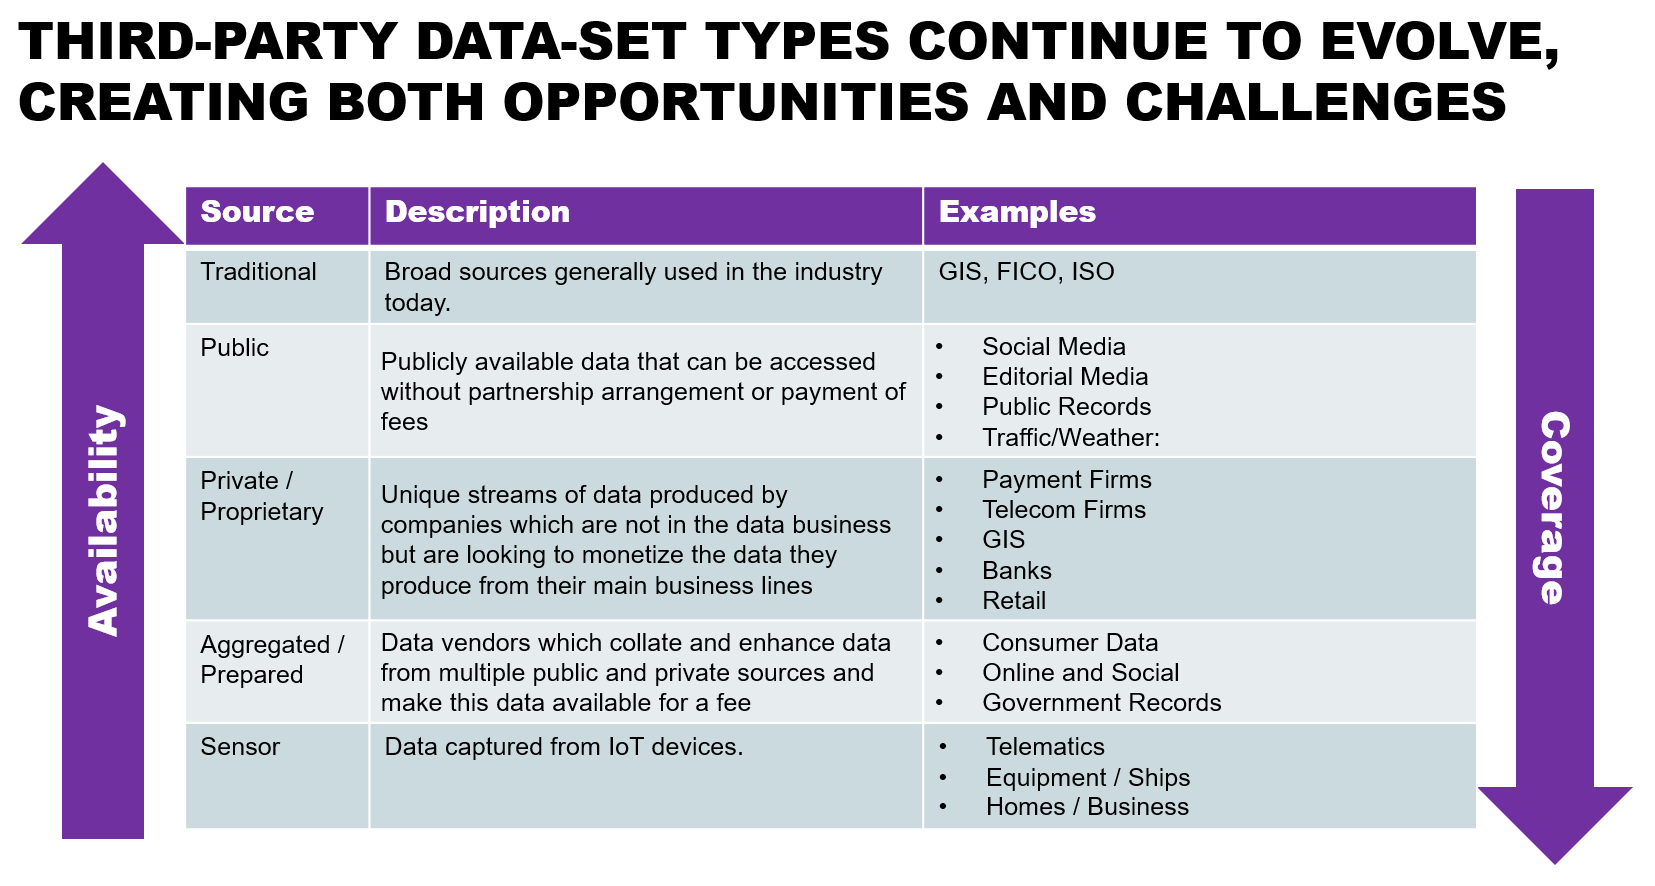 Third-party data-set types continue to evolve, creating both opportunities and challenges.